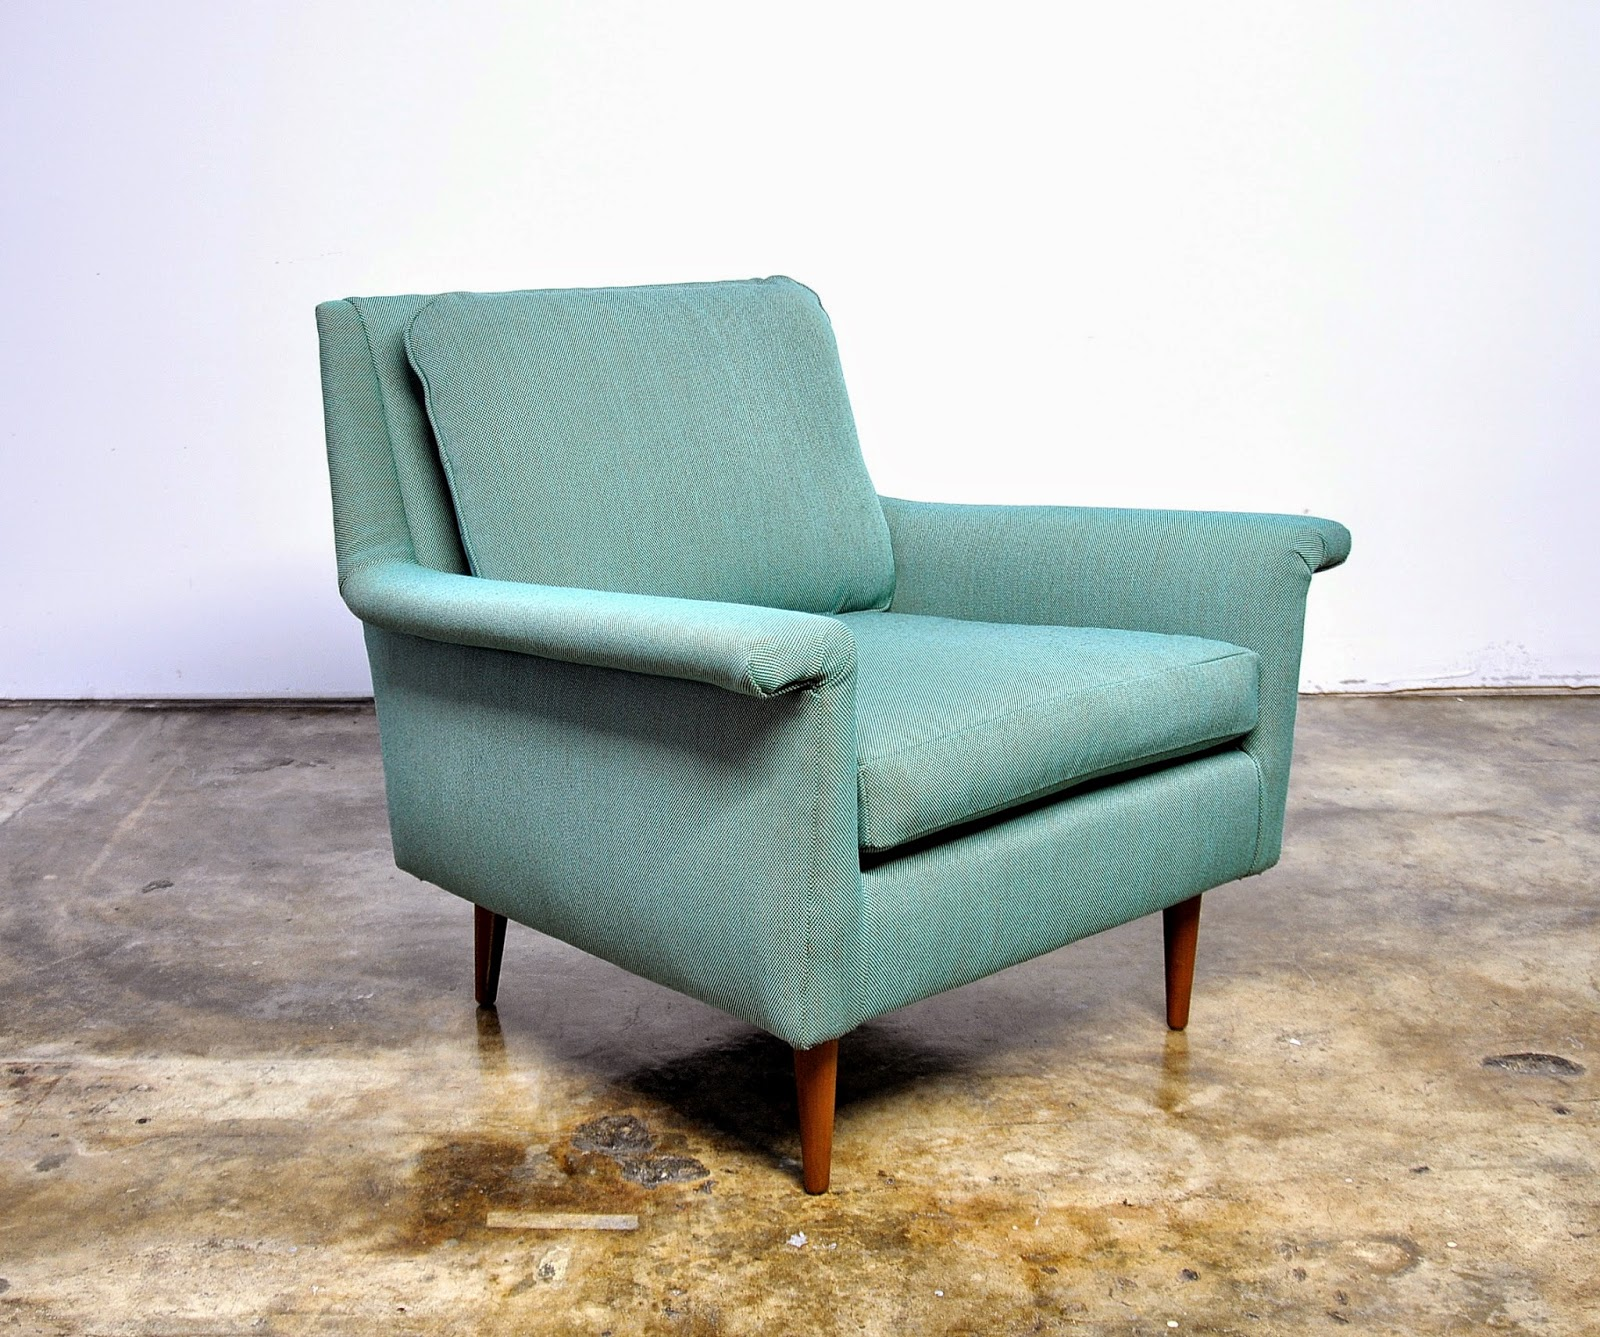 Charming Milo Baughman Club Or Lounge Chair